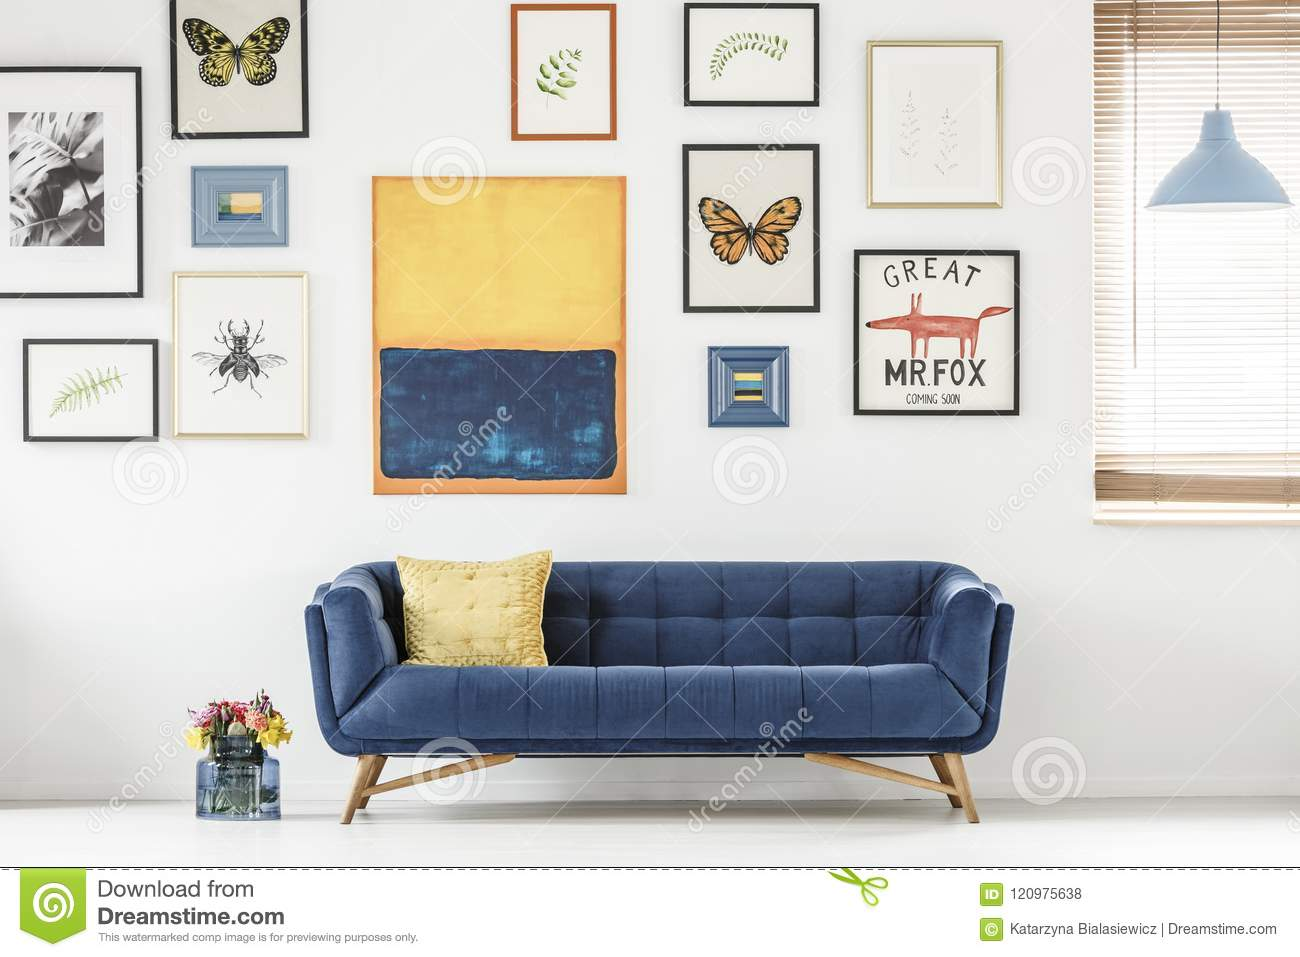 Phenomenal Navy Blue Sofa Against White Wall With Posters And Painting Theyellowbook Wood Chair Design Ideas Theyellowbookinfo